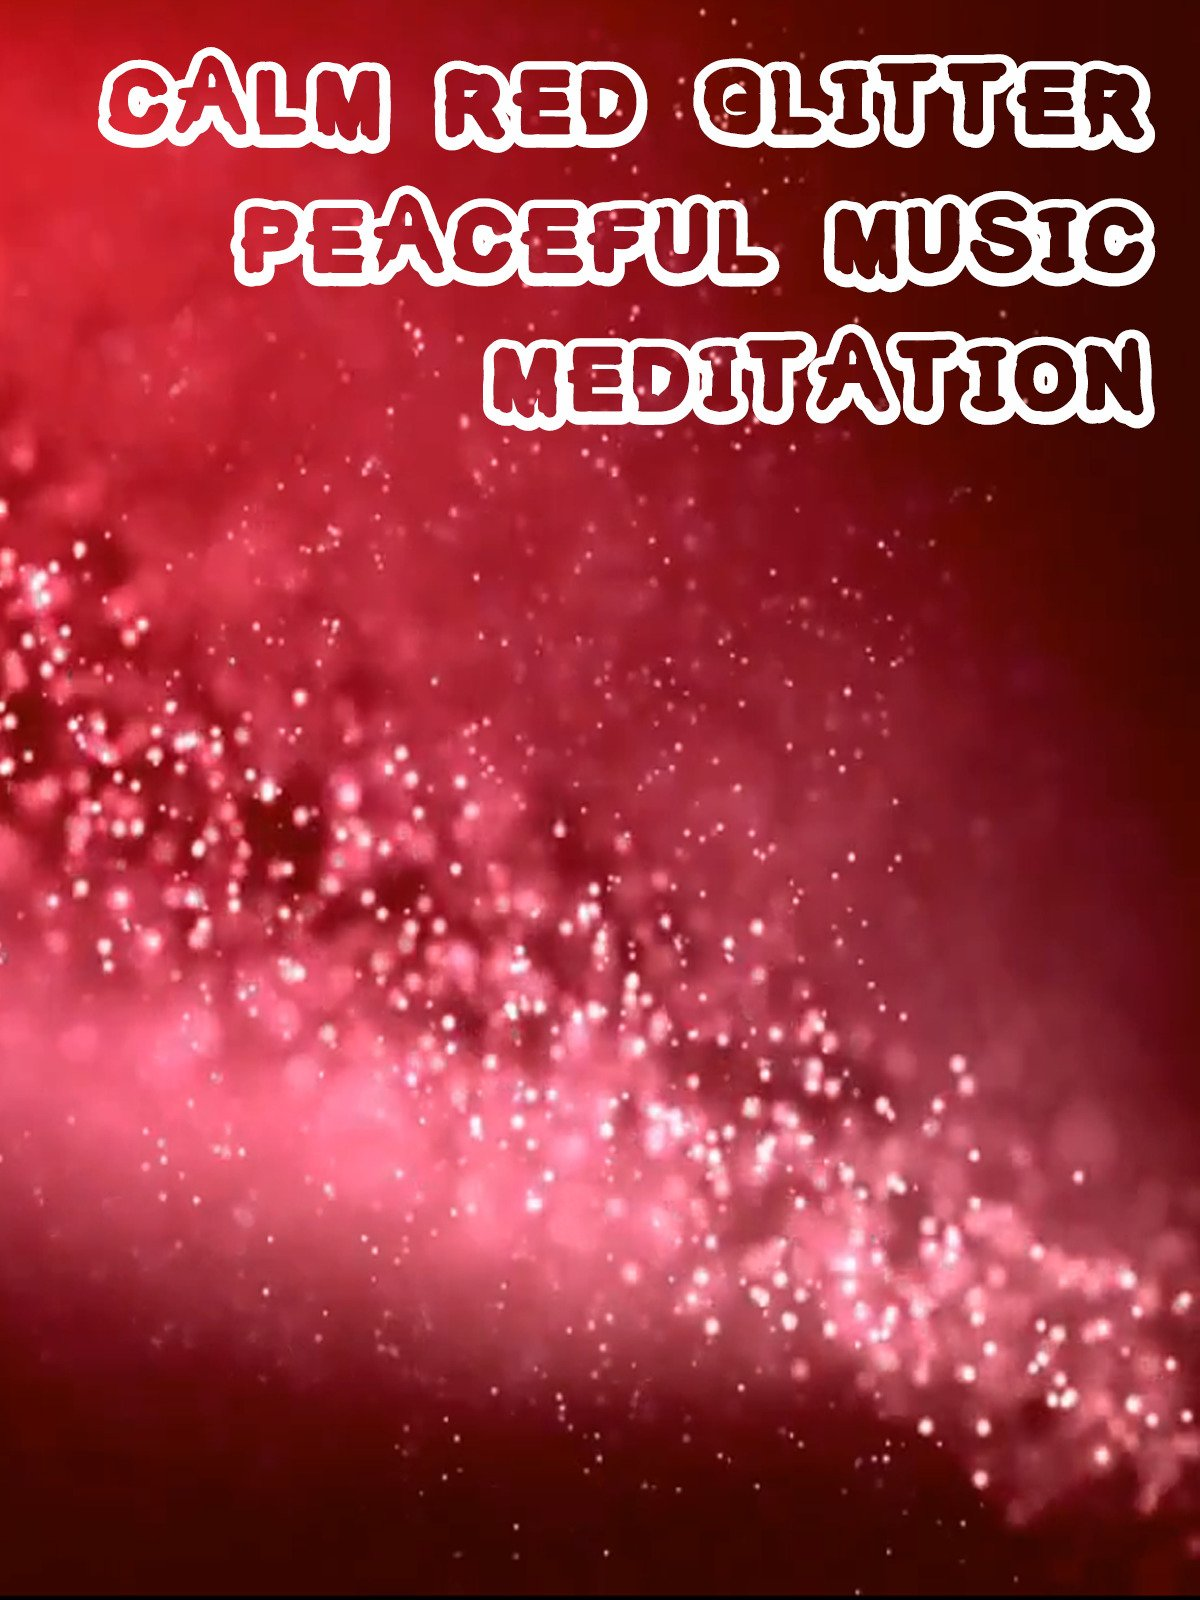 Calm Red Glitter Peaceful Music Meditation